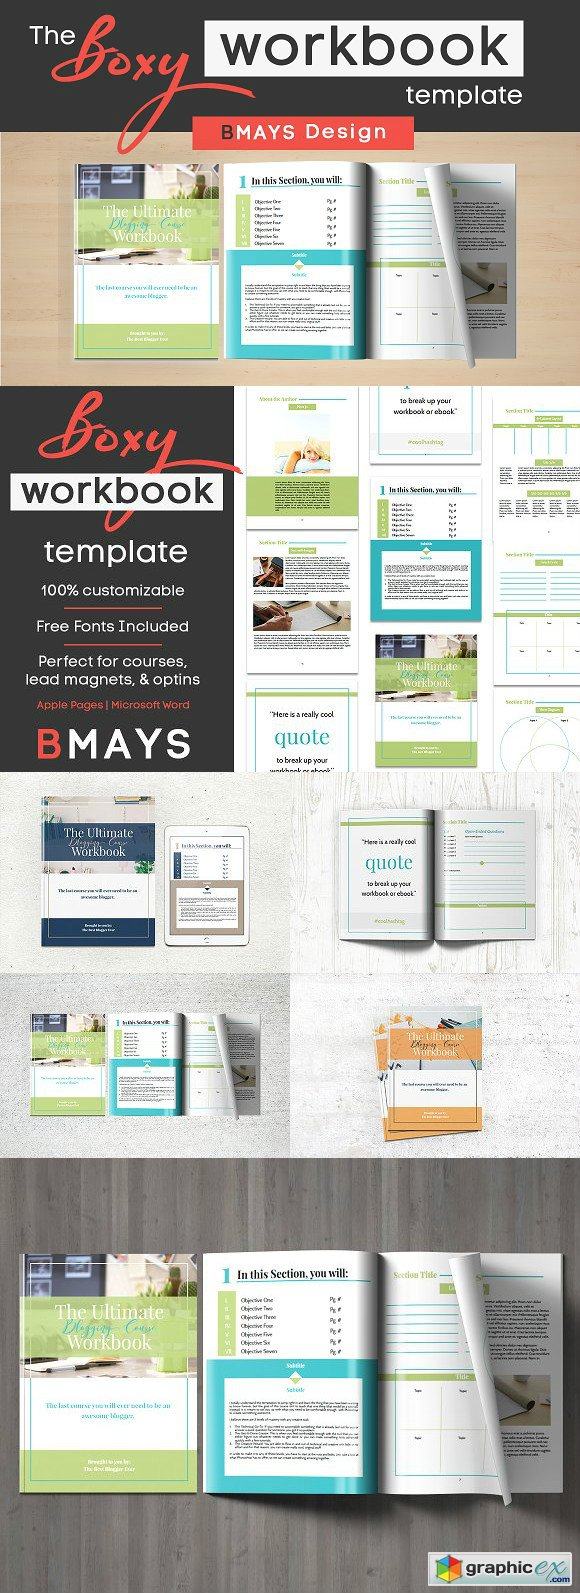 Boxy Workbook & Layout Template